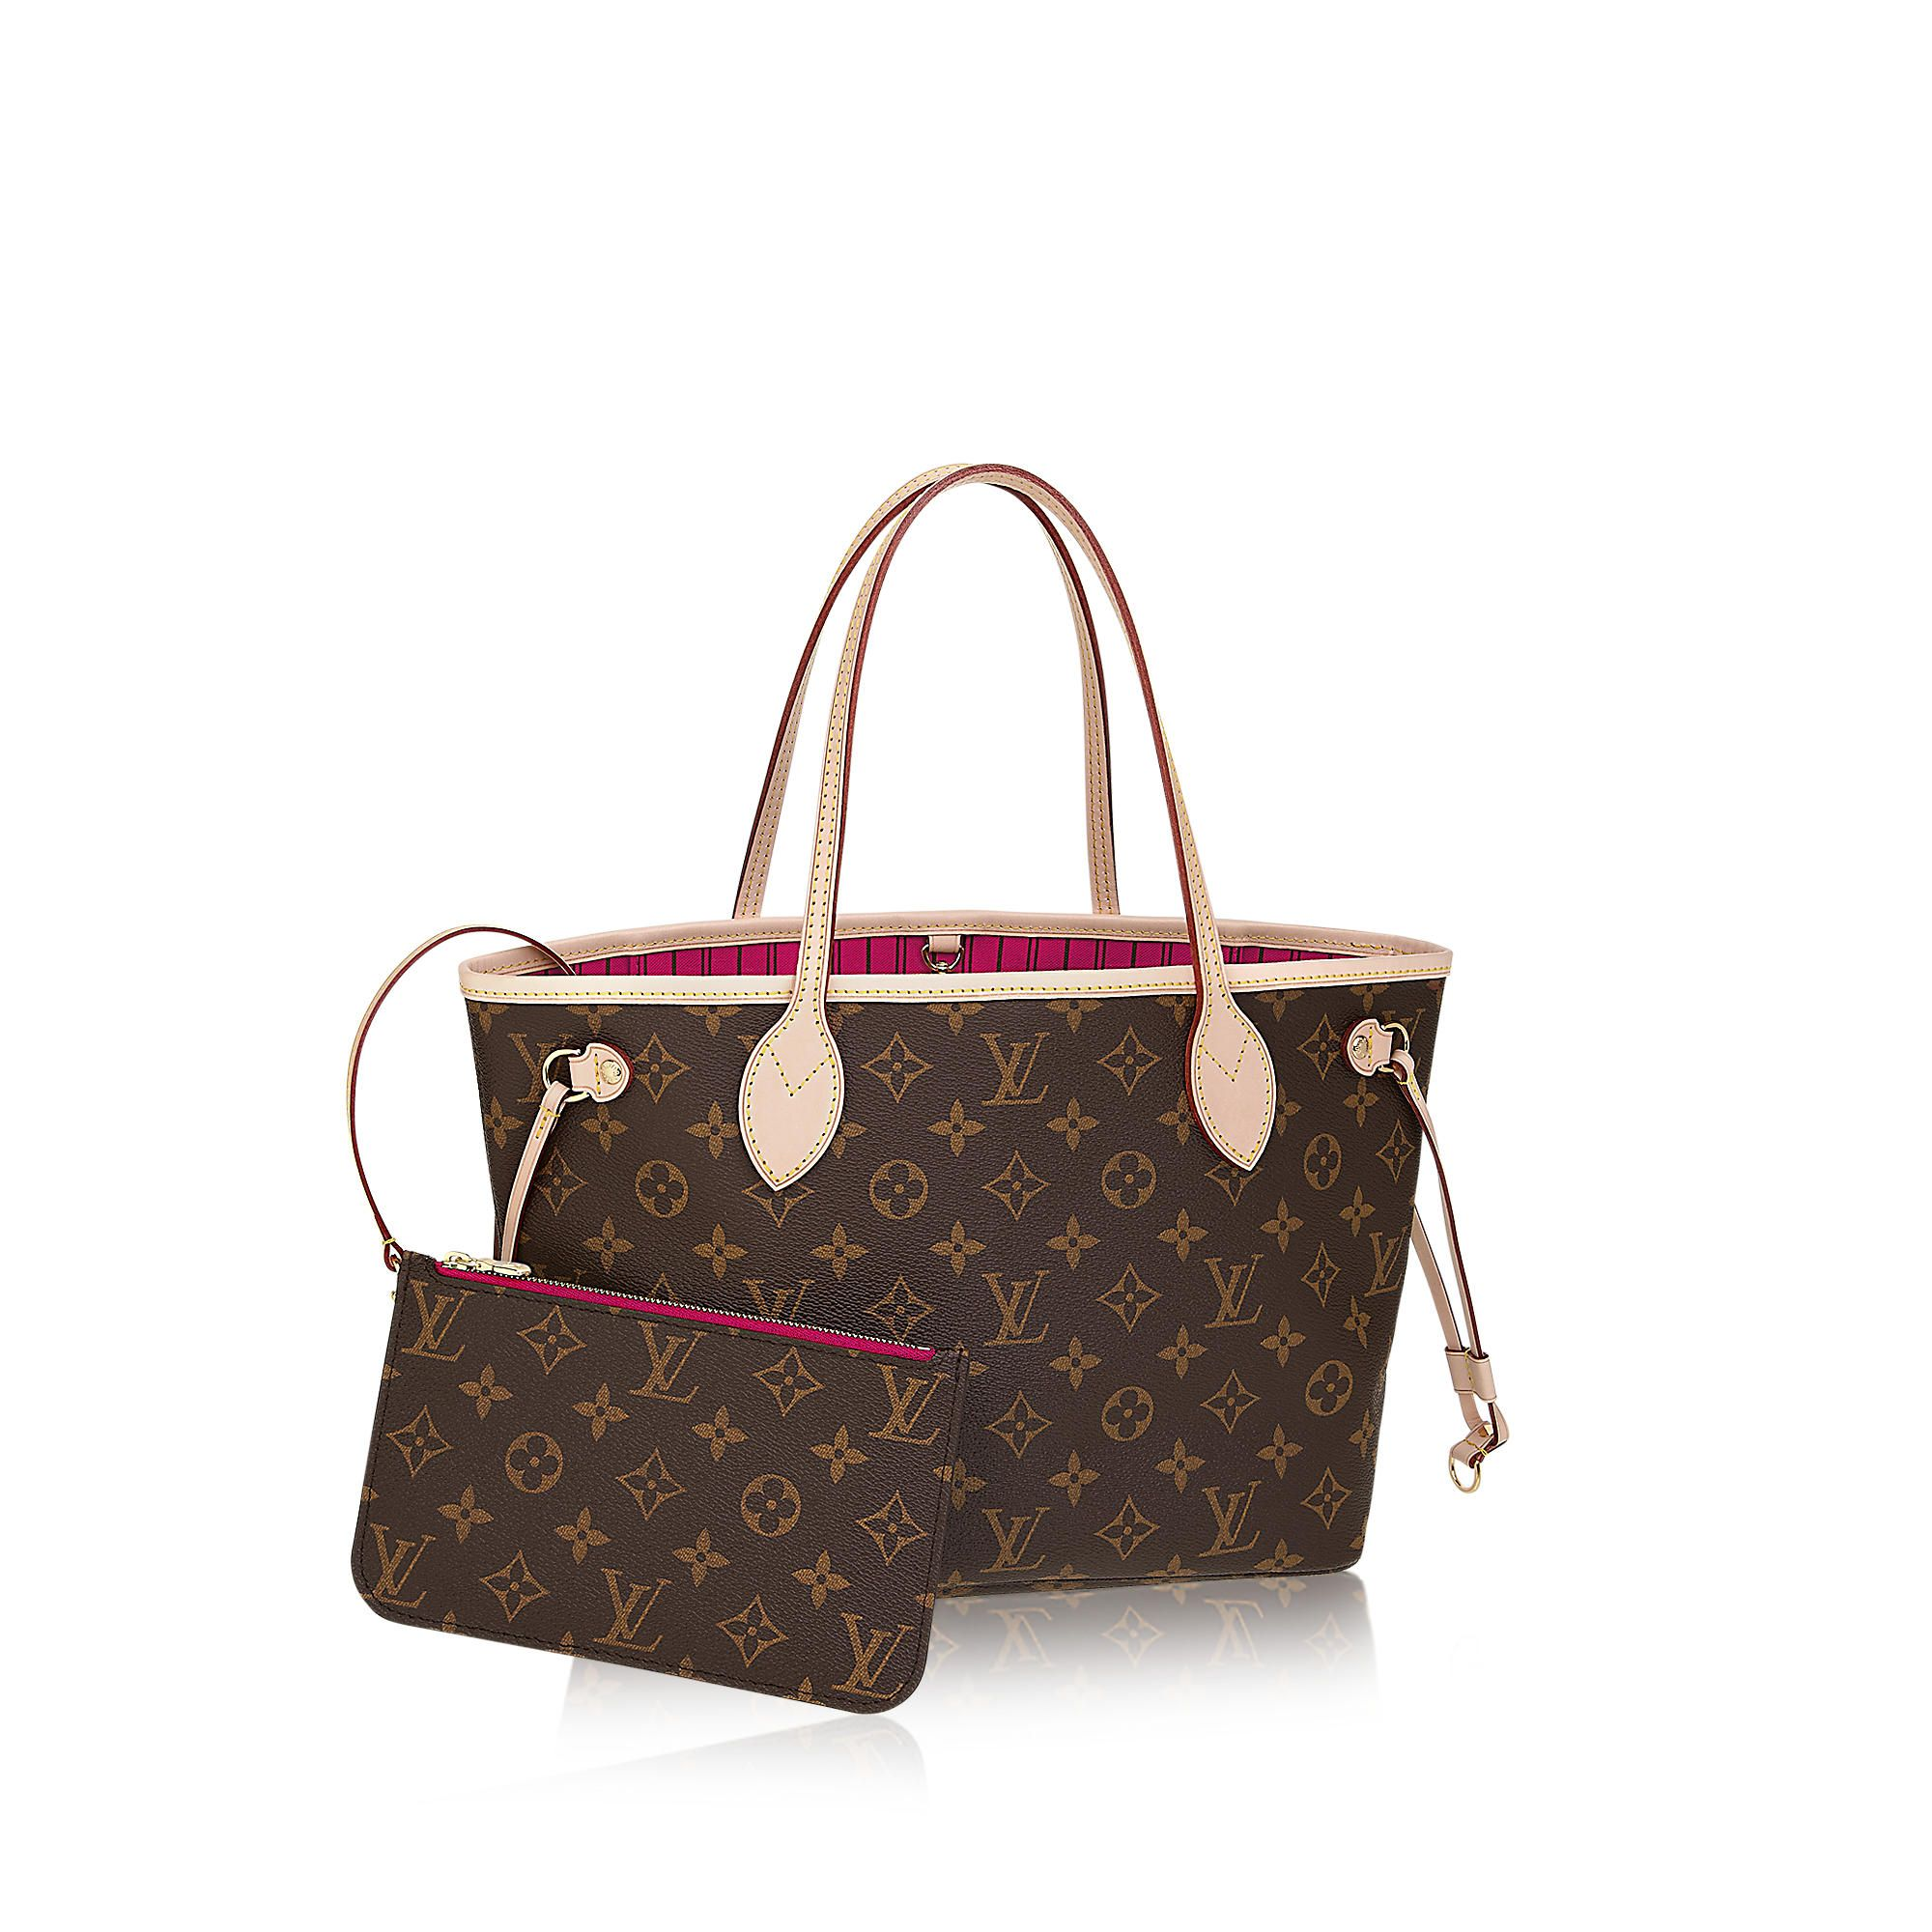 Products By Louis Vuitton Neverfull Pm Louis Vuitton Neverfull Pm Louis Vuitton Neverfull Louis Vuitton Neverfull Monogram